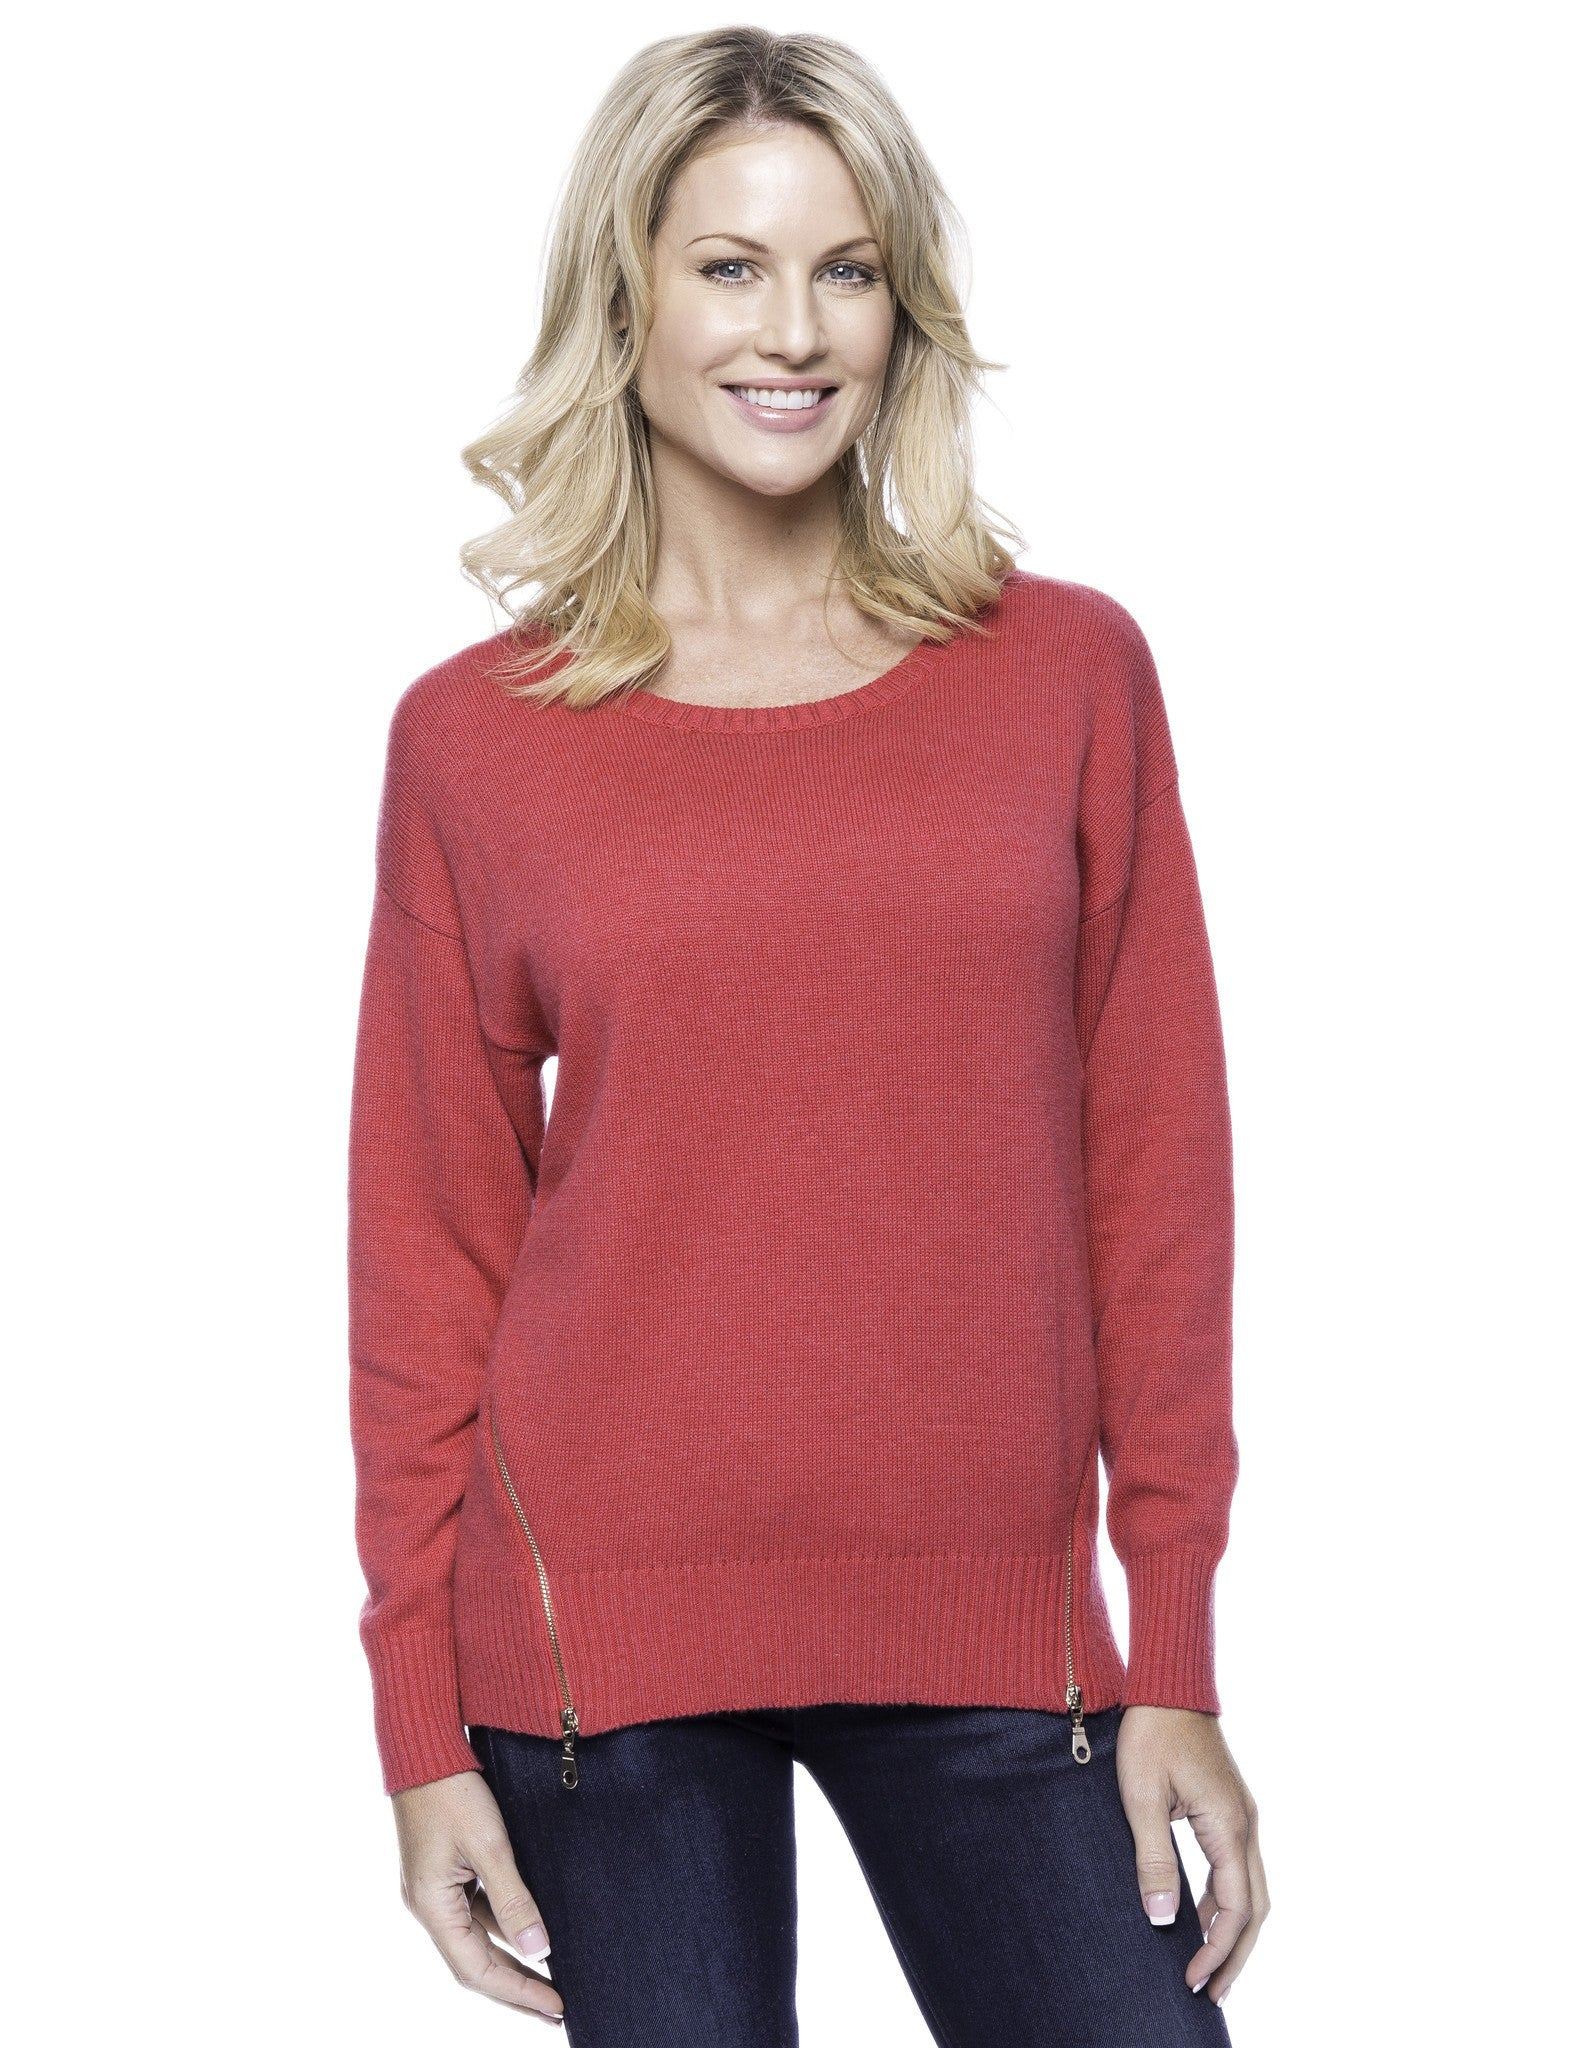 Cashmere Blend Crew Neck Sweater with Side Zip - Fuchsia